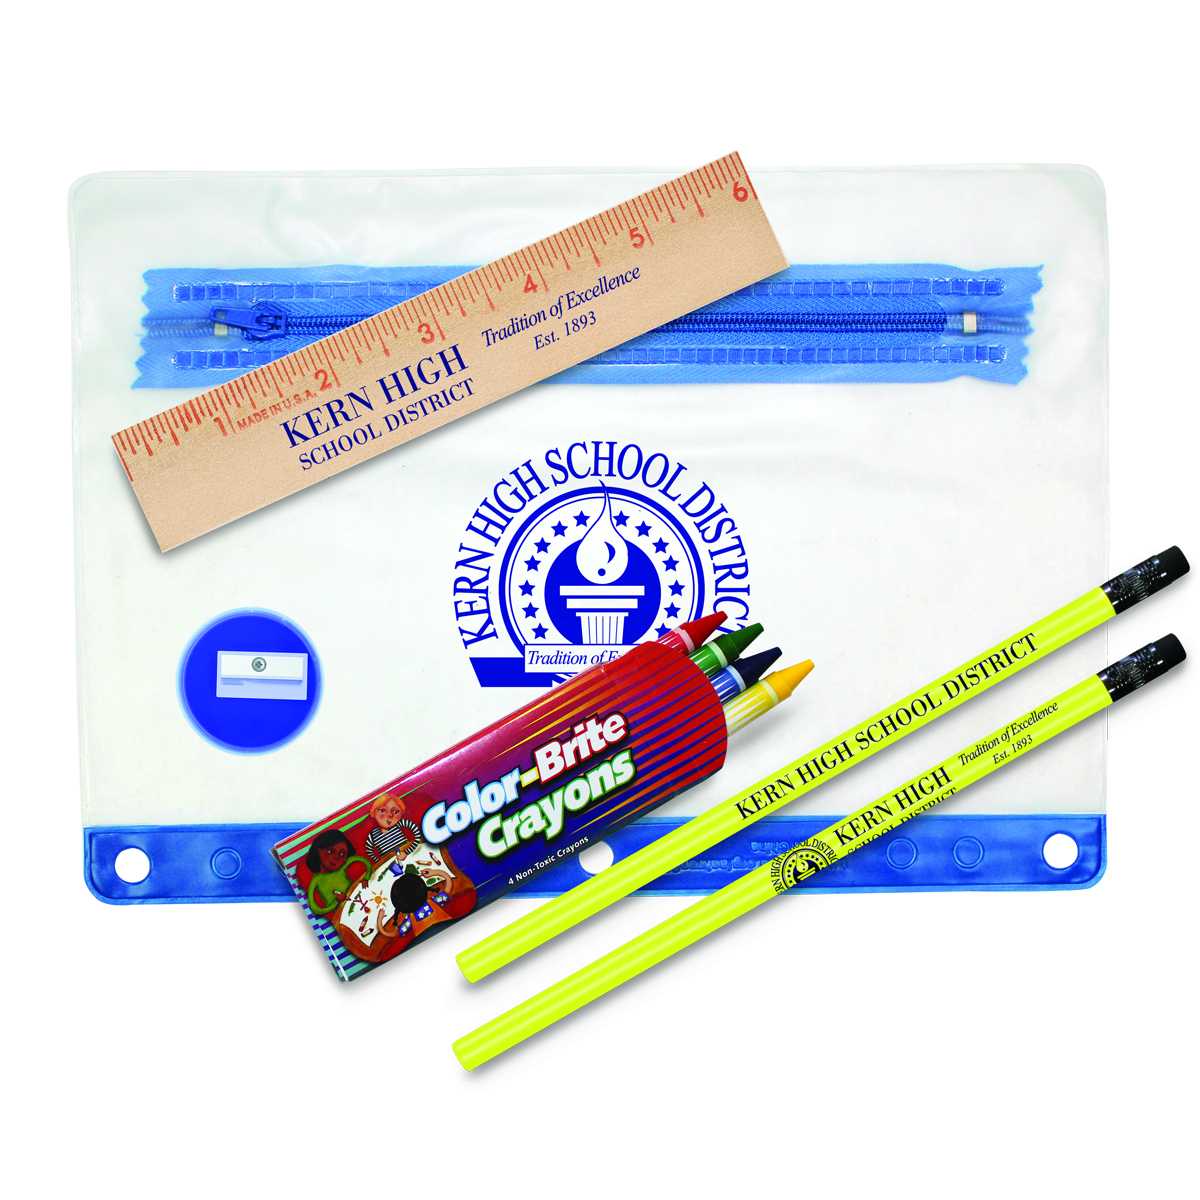 Clear Translucent School Kit